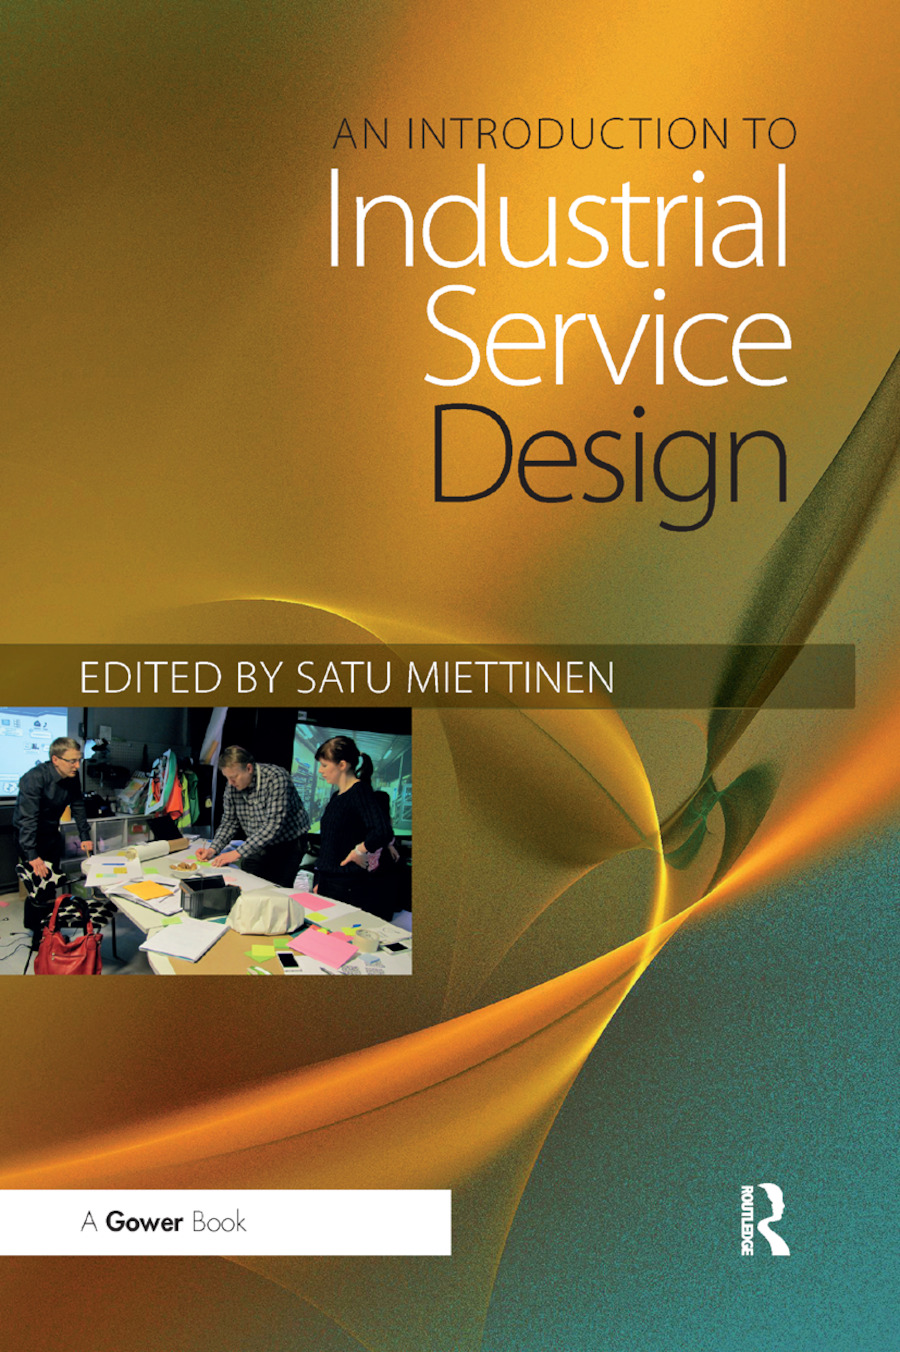 An Introduction to Industrial Service Design